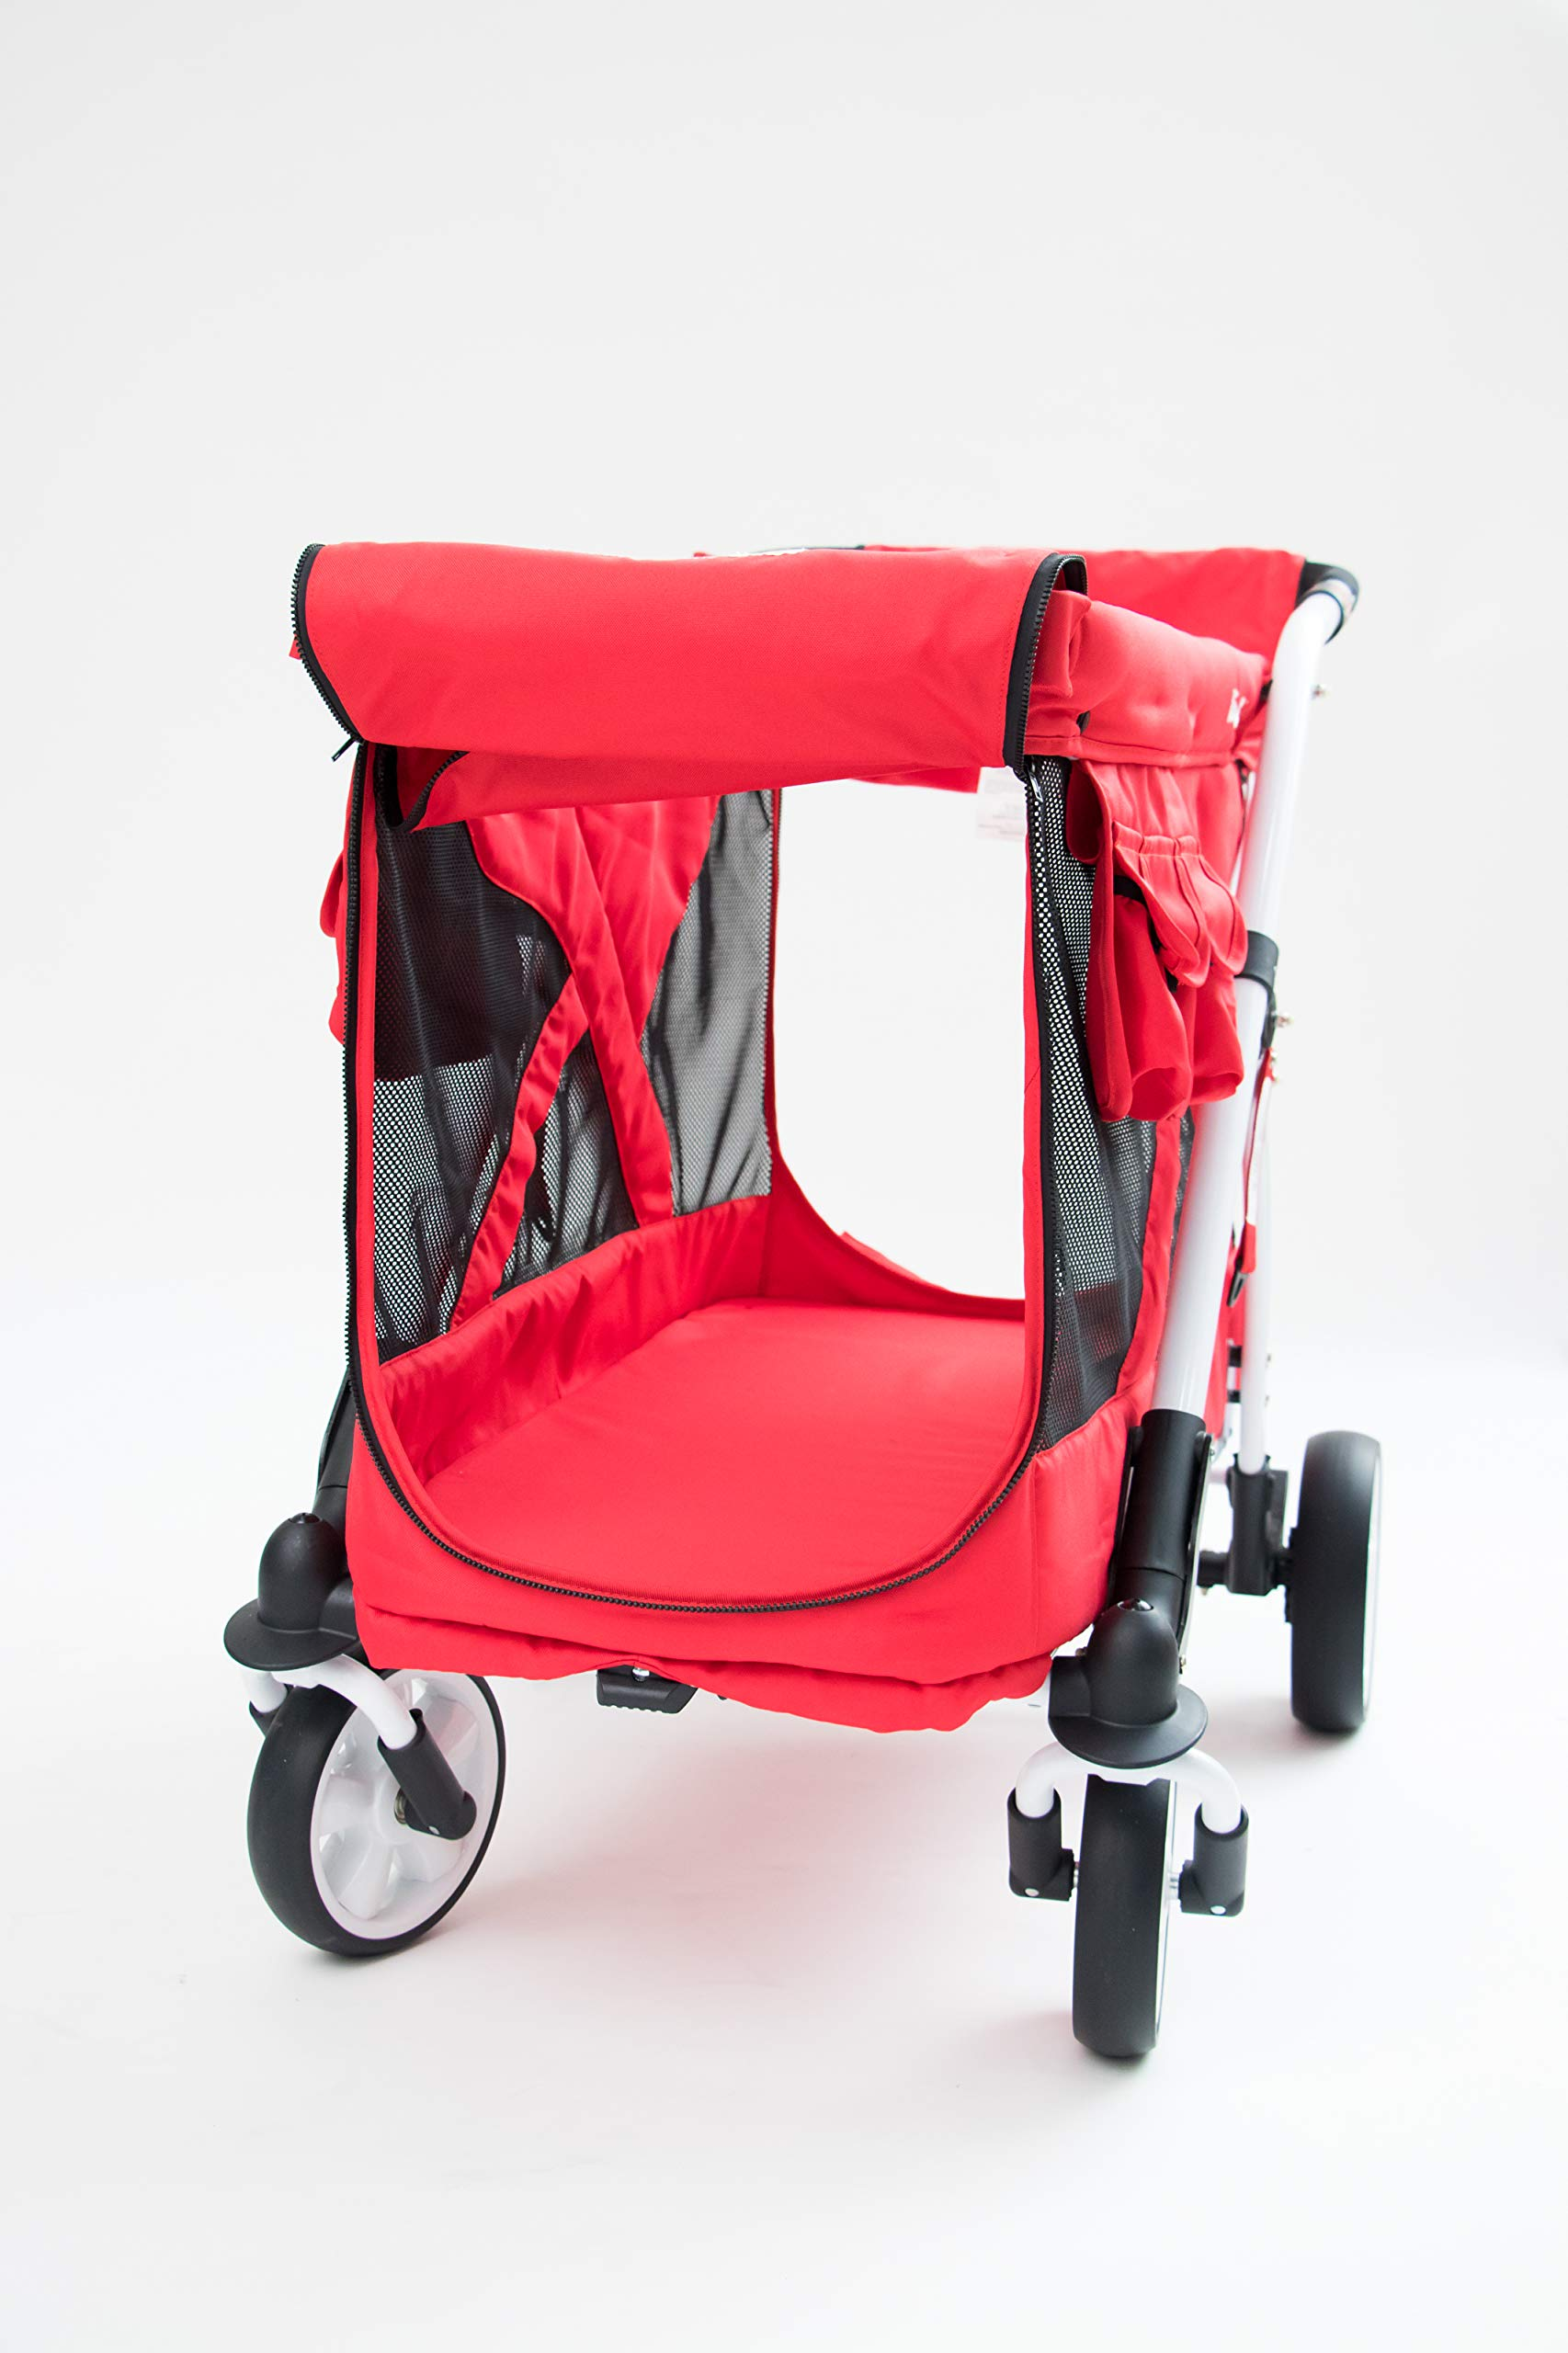 Familidoo Multi-Purpose 6 in 1 Large Twin Size Toddler Baby Folding Stroller Chariot Wagon, Red by FAMILIDOO (Image #6)